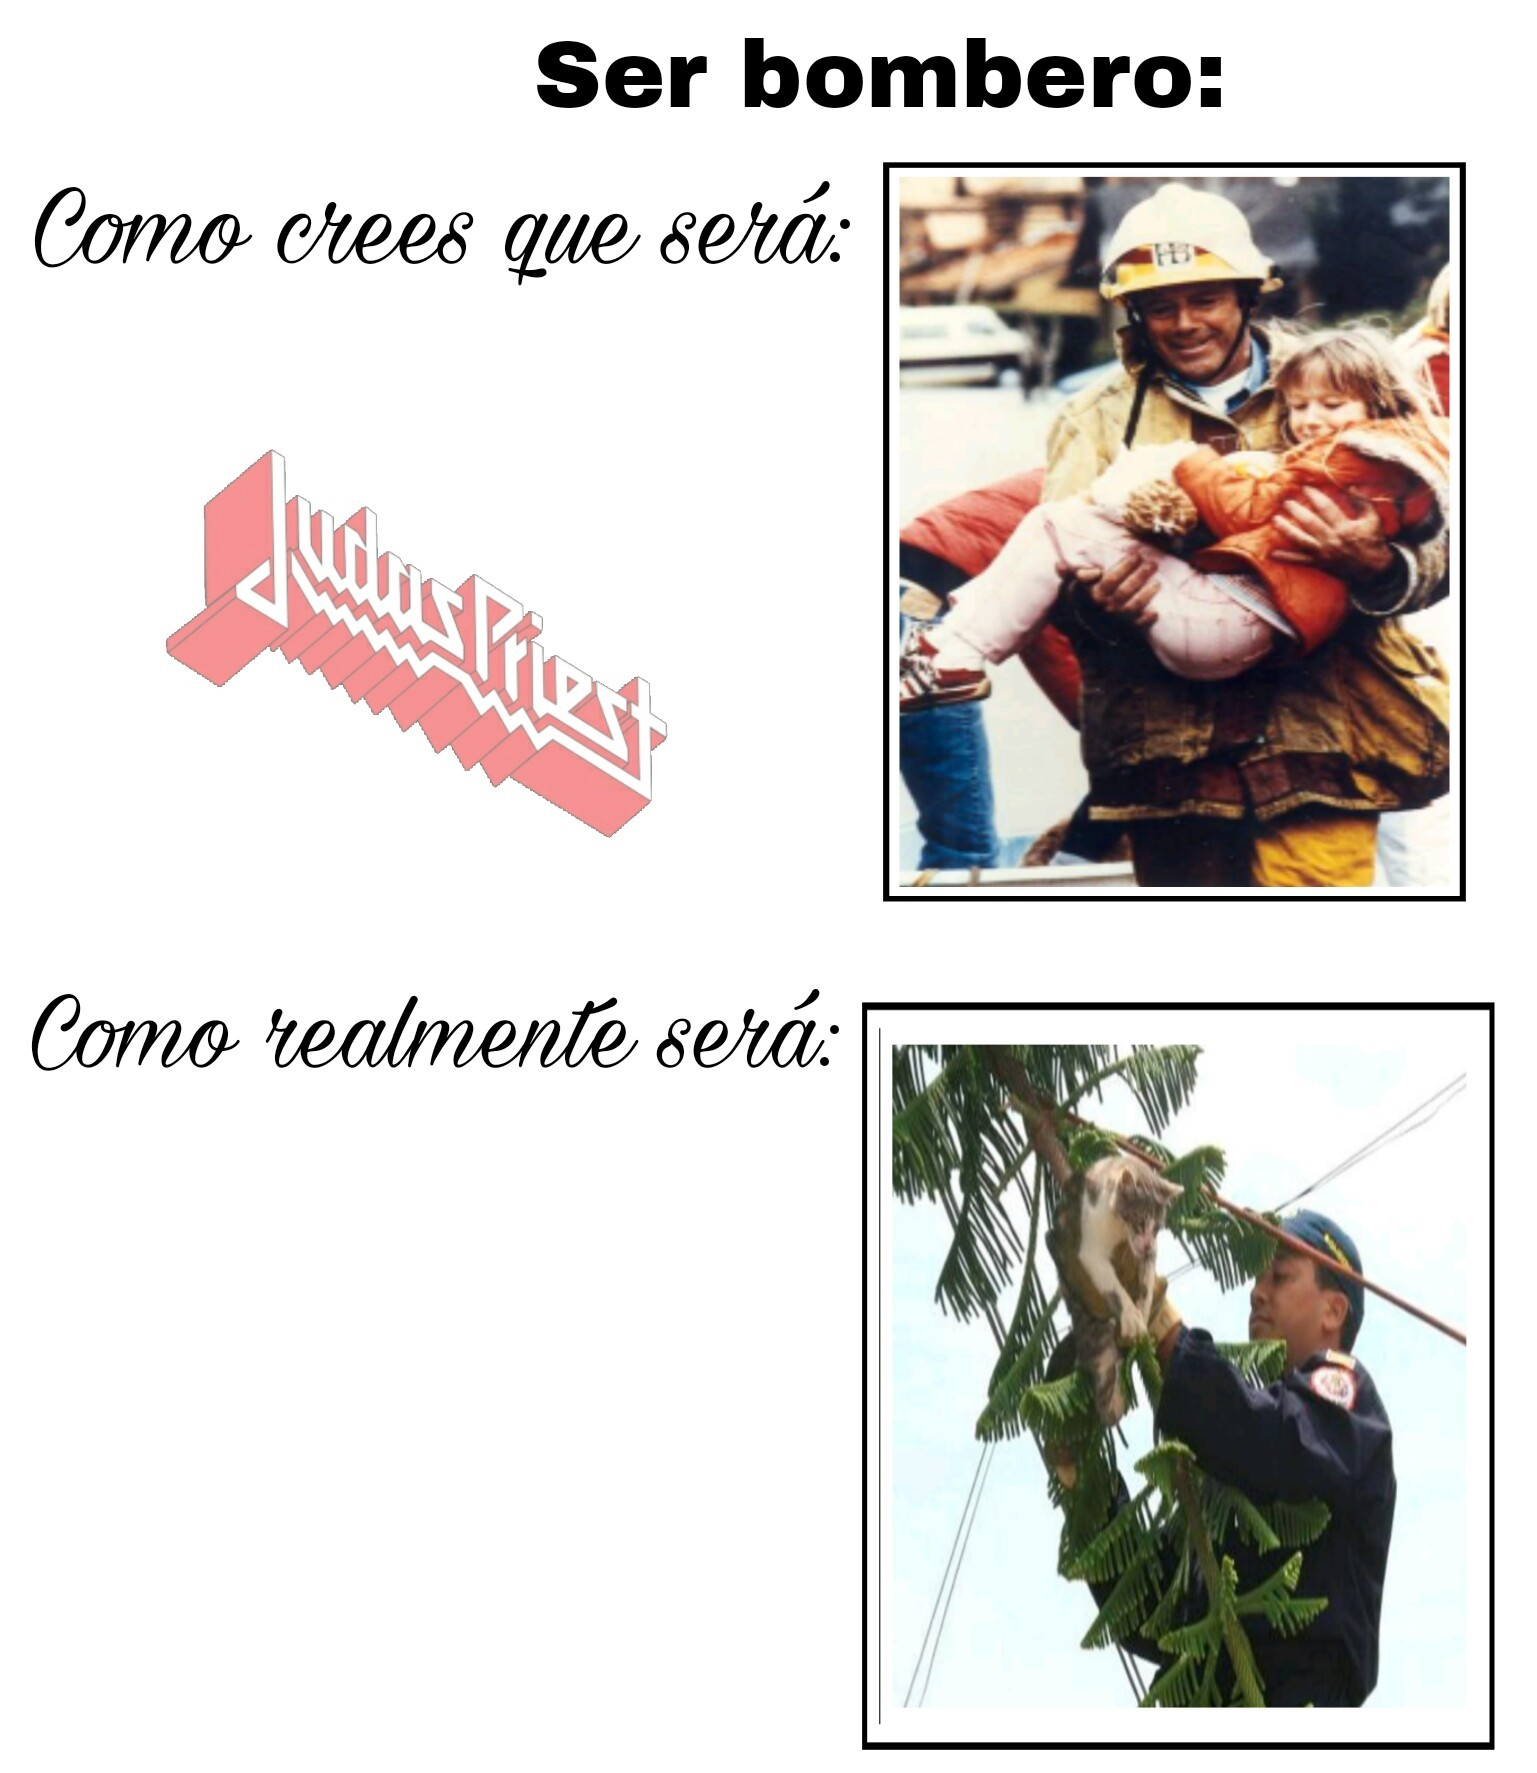 Stos firefighters - meme